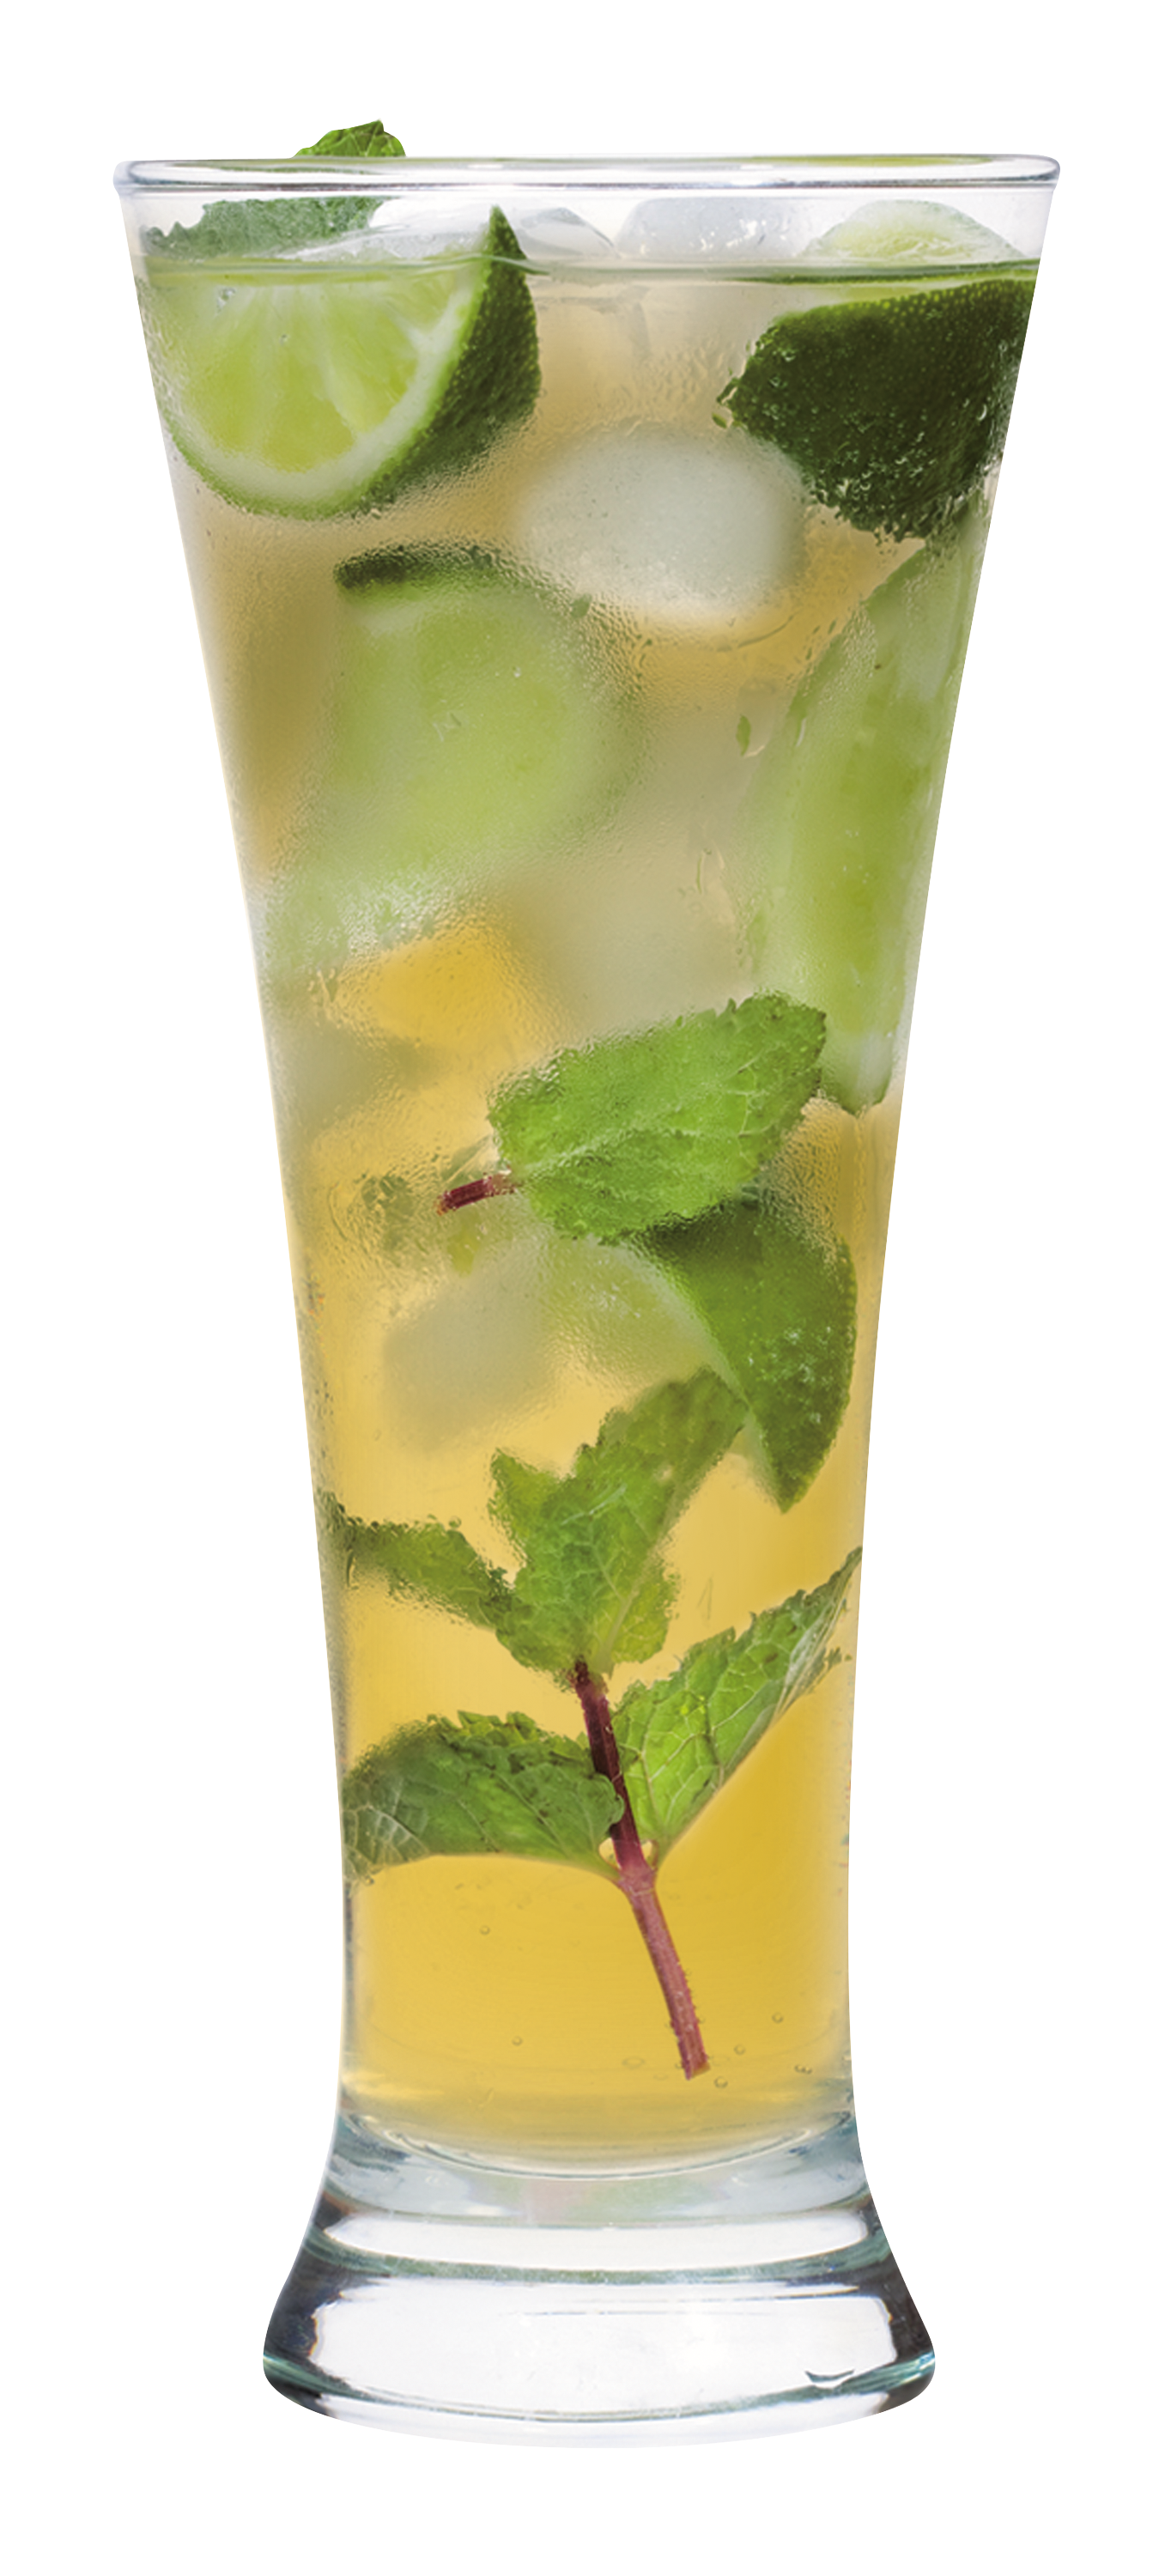 The Mariposa Mojito